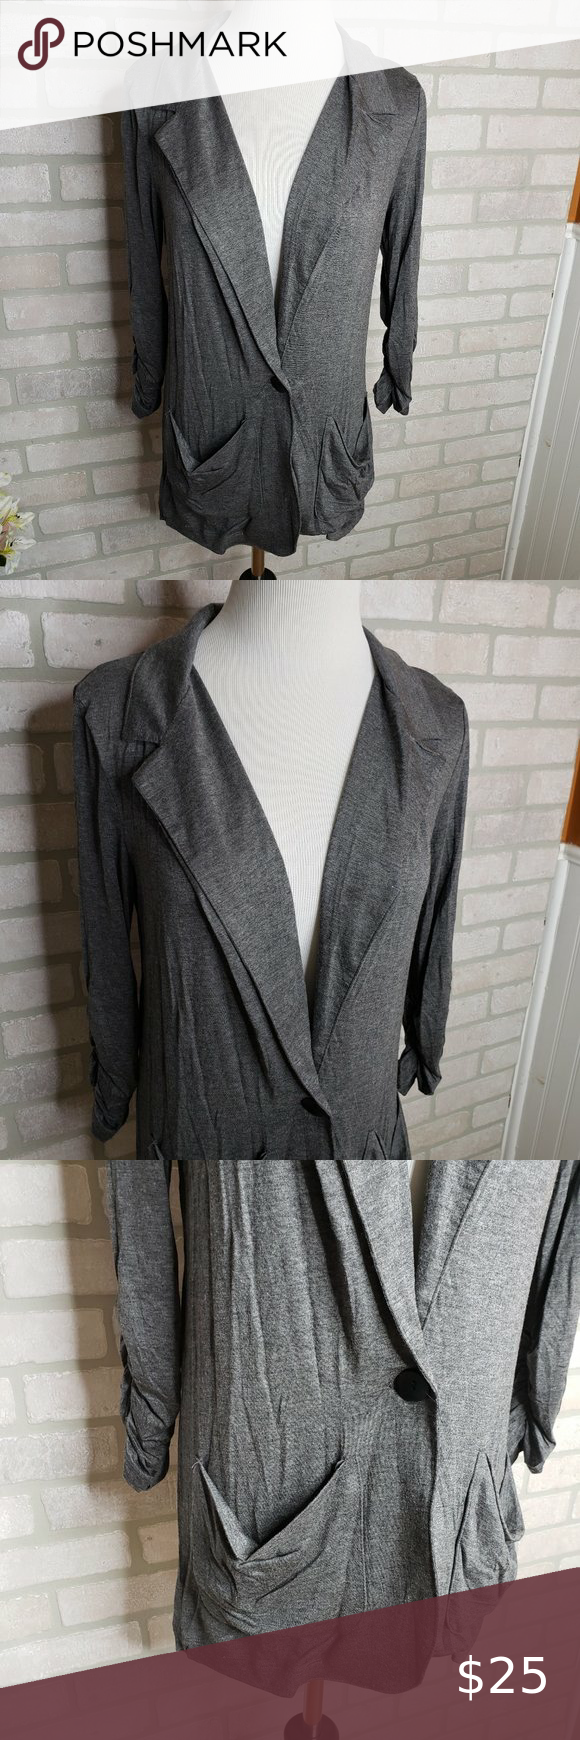 Daytrip Gray Slouchy Pocket Cardigan Great condition Size Medium  Thanks for shopping Wanderland Thrift! I'm always open to all offers. Measurements are available upon request.  No modeling. No holds. I ship same day or next day. Items are packaged in a reusable clear poly for protection before being packaged for shipping.  Thanks for supporting a local business! daytrip Sweaters Cardigans